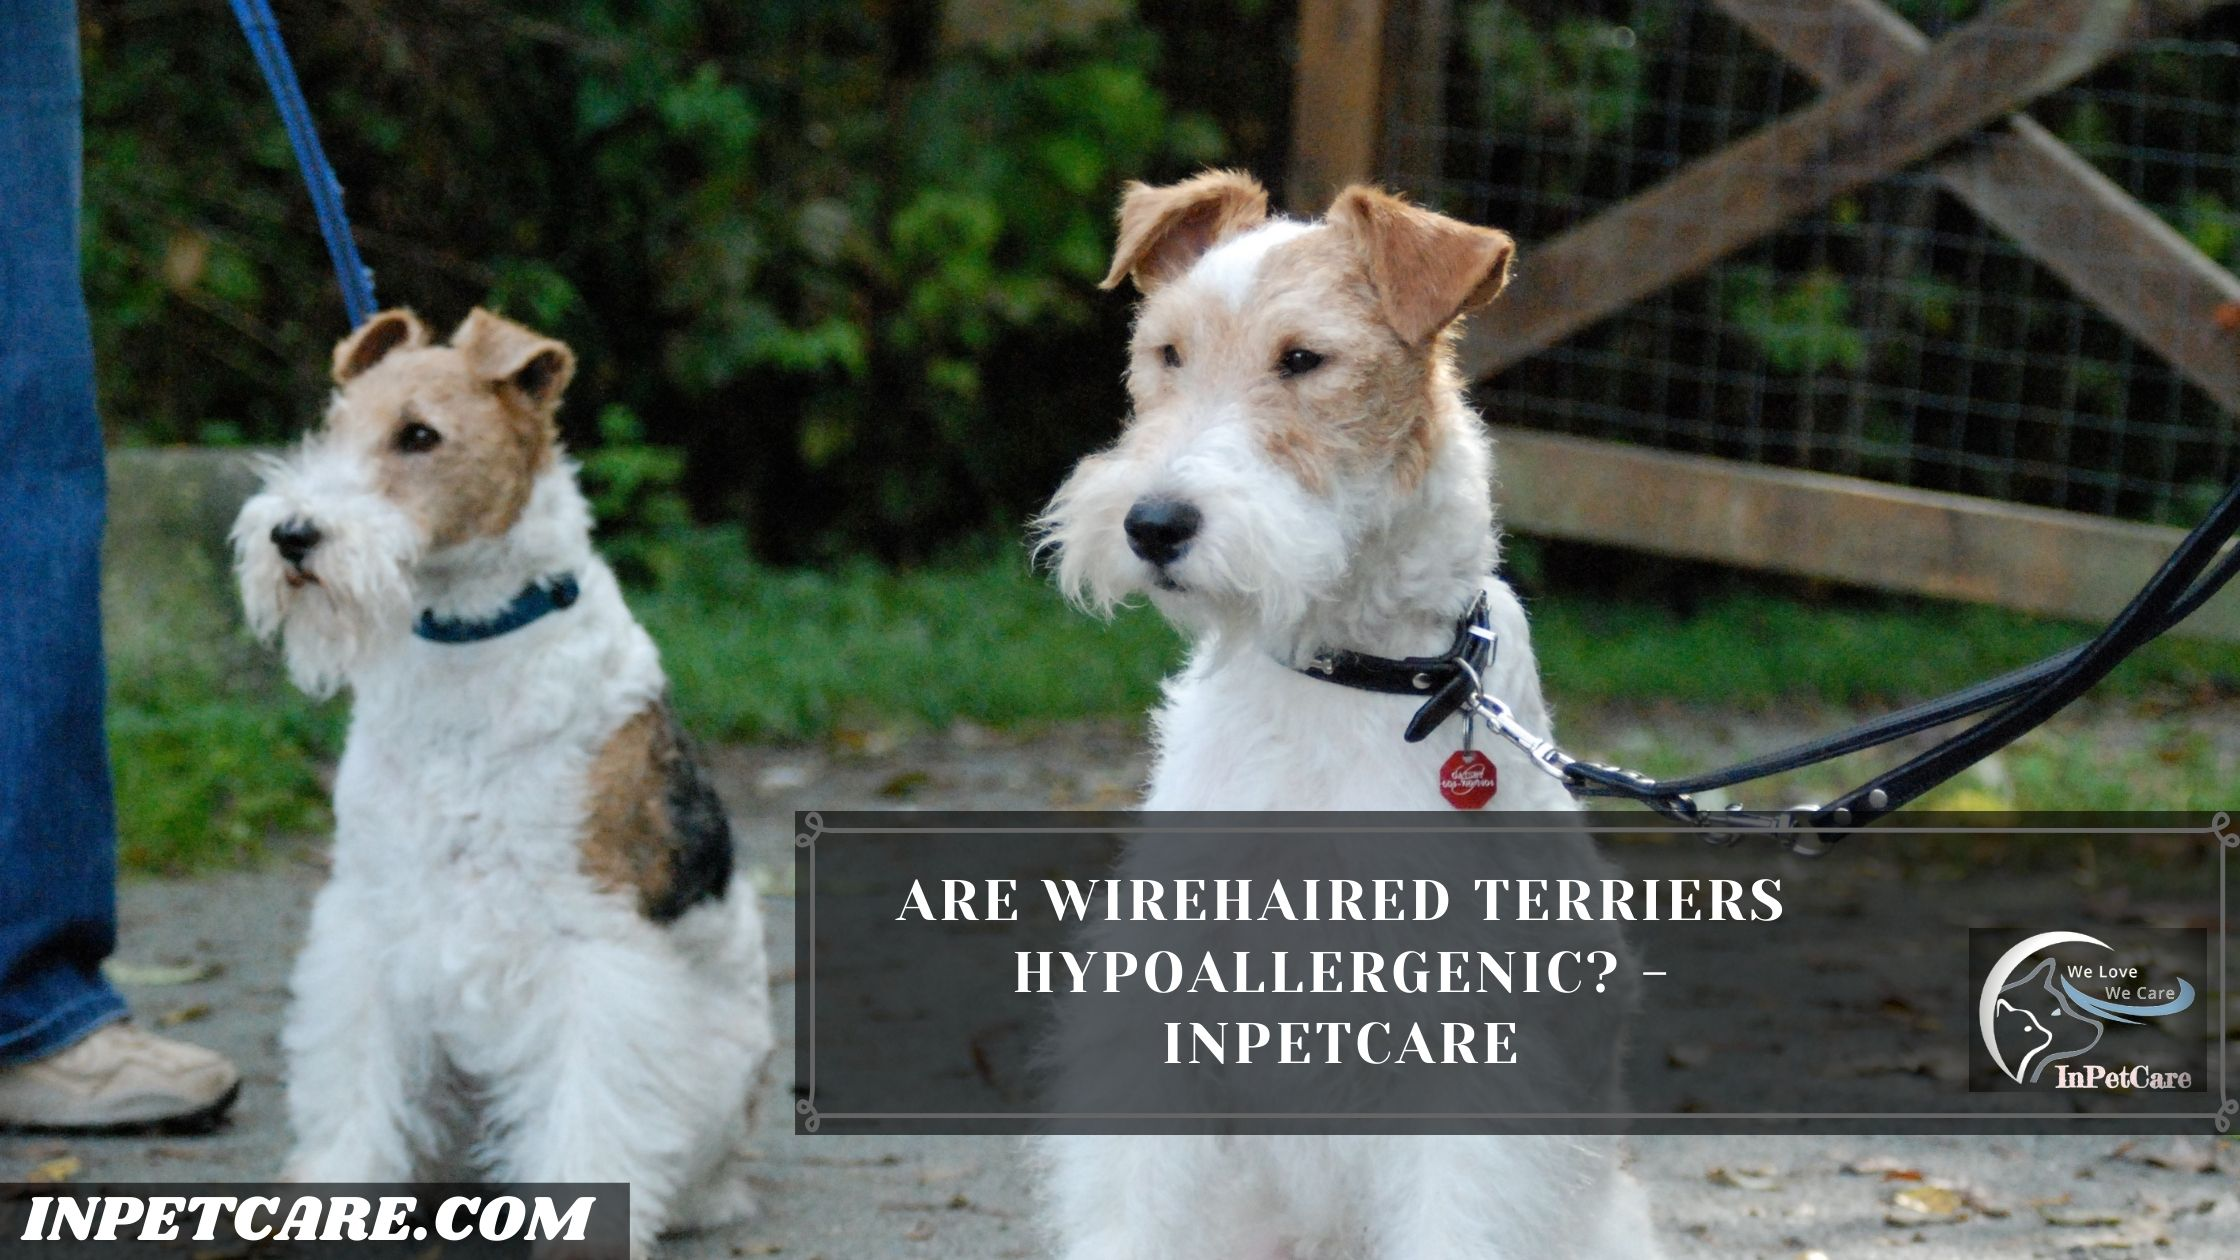 Are Wirehaired Terriers Hypoallergenic? - InPetCare